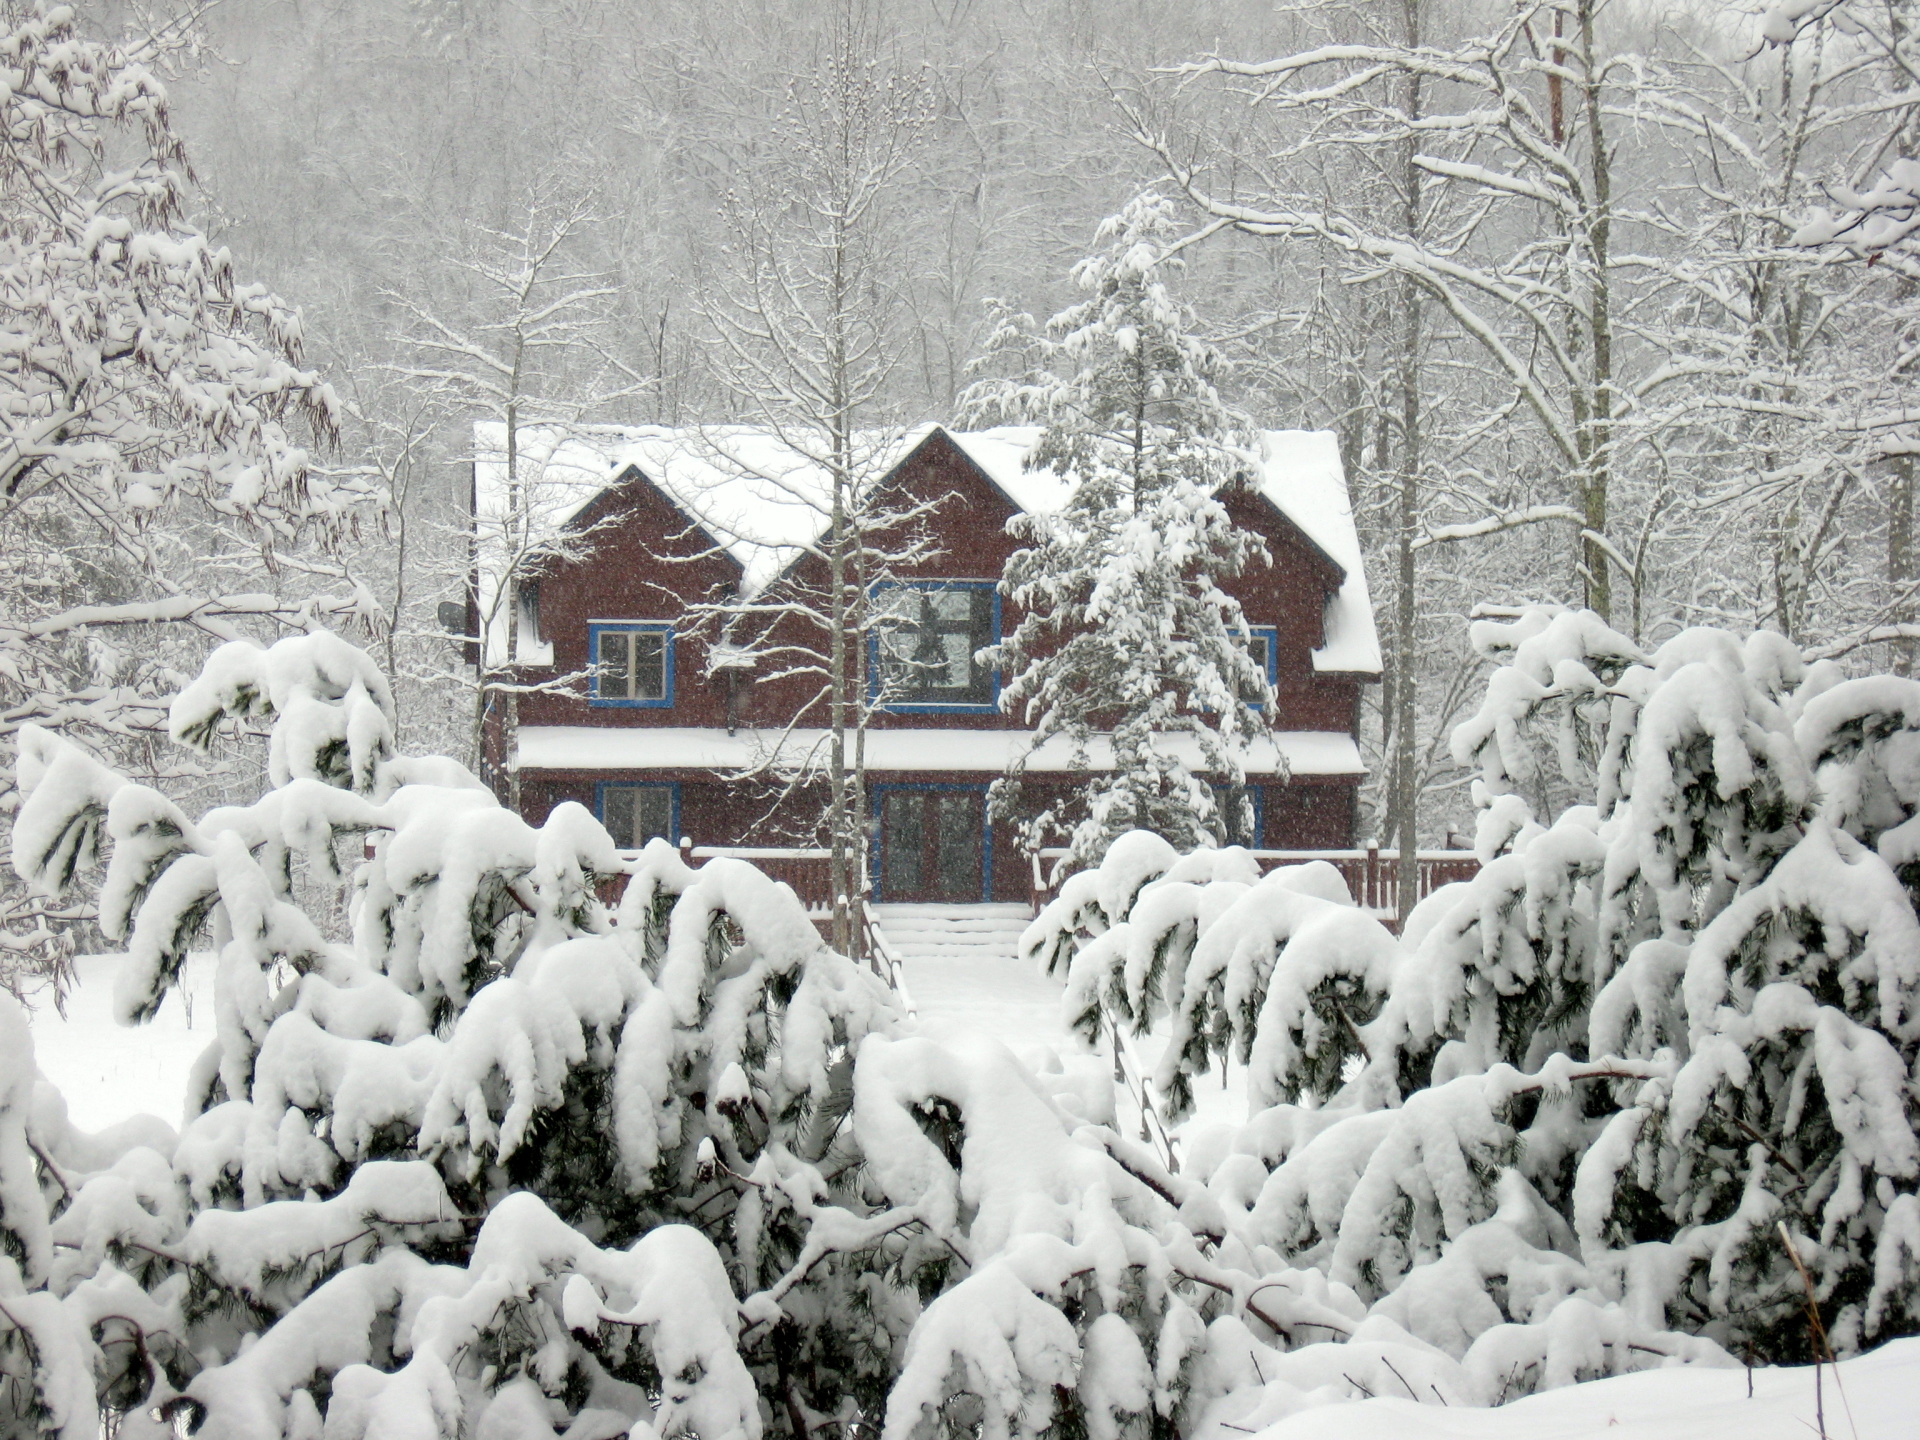 Blue Mountain Lodge - Snowy Christmas Day. Winter wonderland in the Smokies